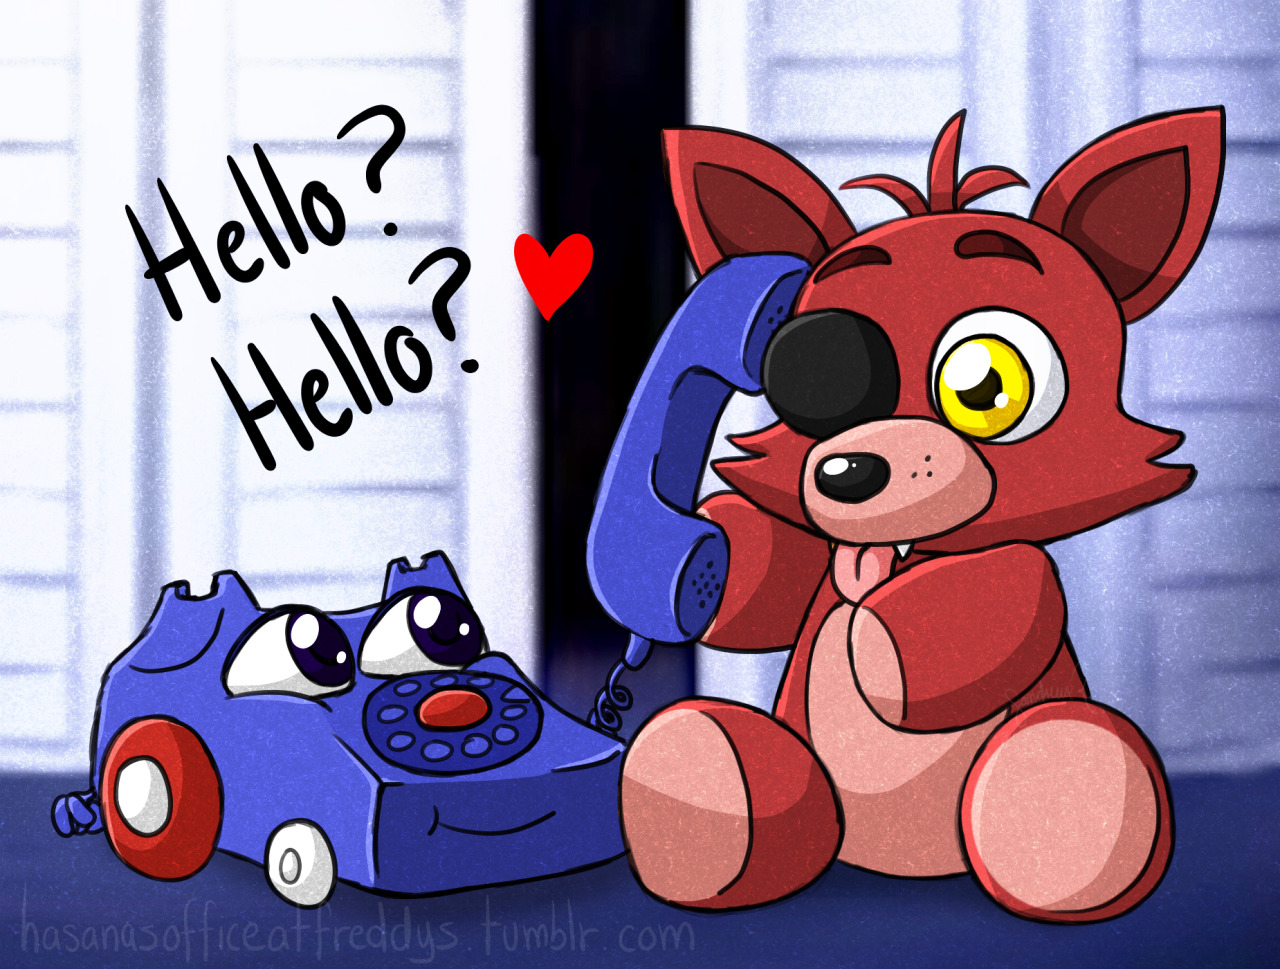 5 Nights At Foxys purple telephone and teddy foxy - five nights at freddy's